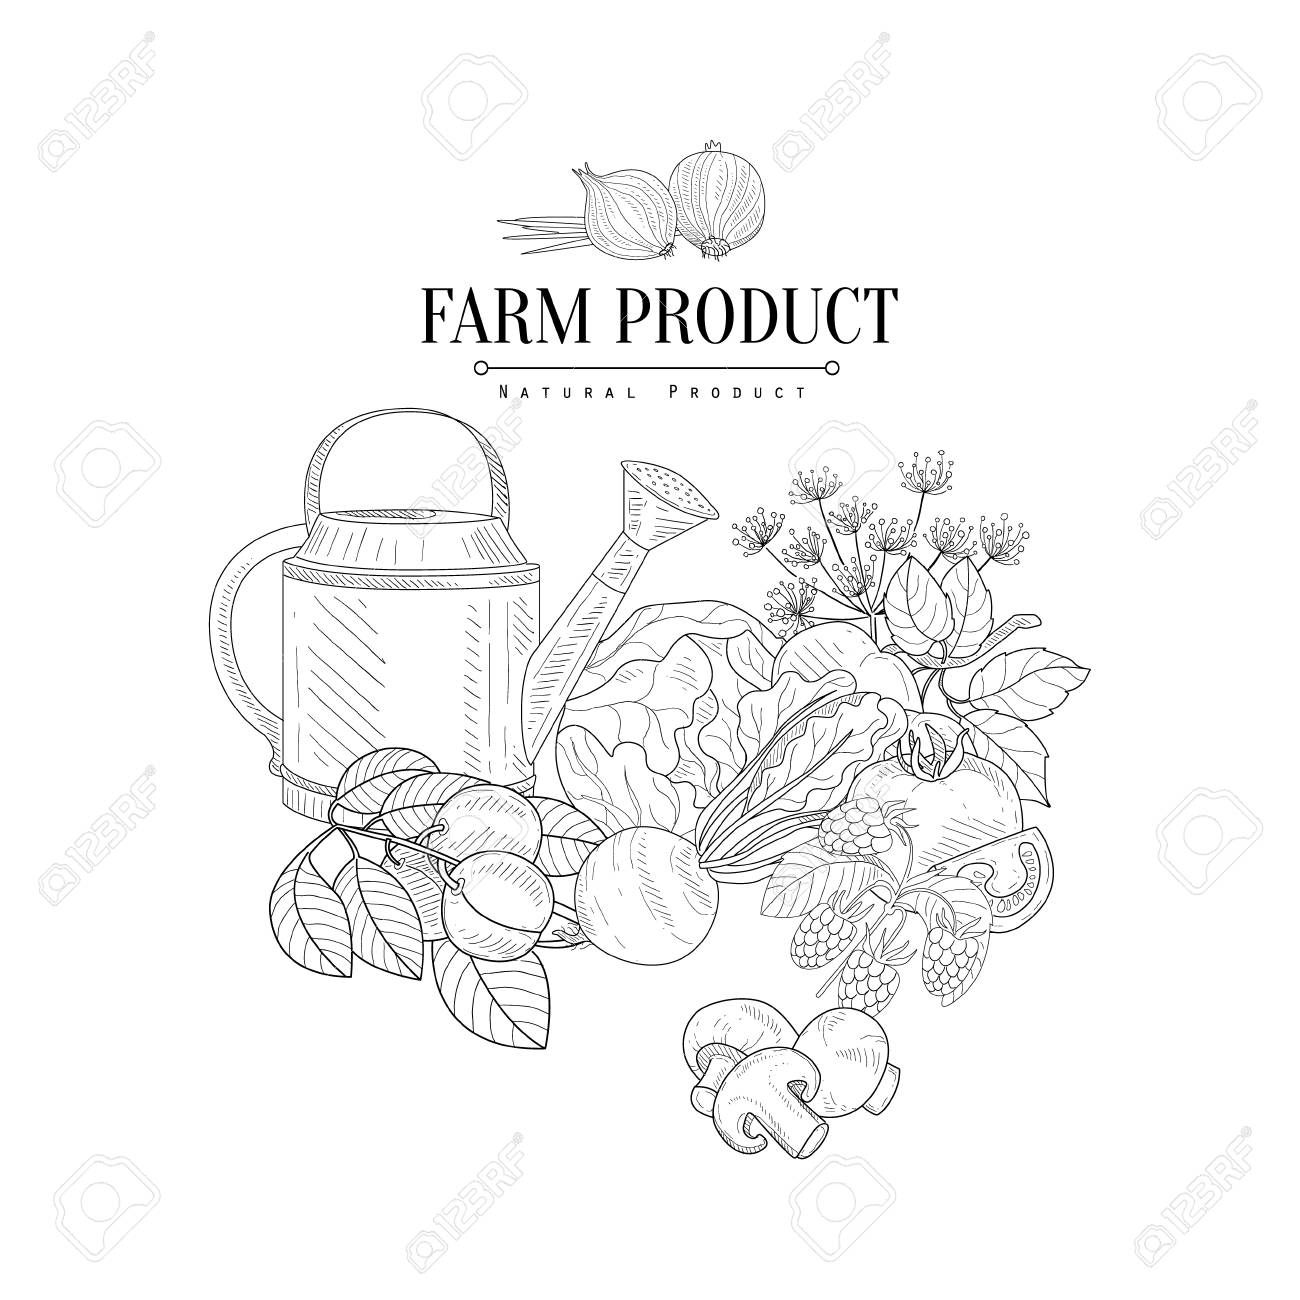 1300x1300 Farm Product Hand Drawn Realistic Detailed Sketch In Classy Simple